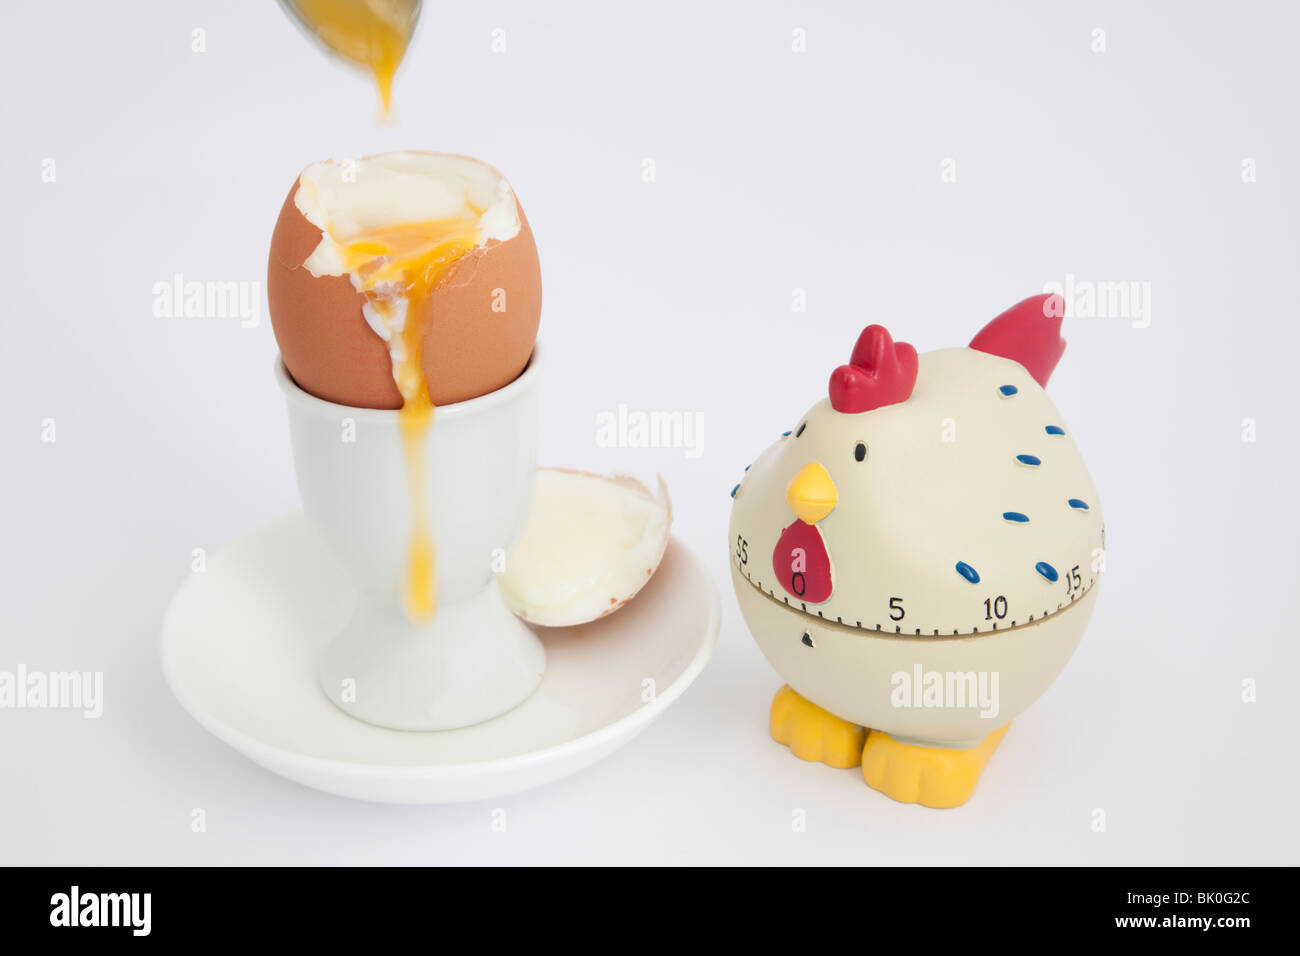 Chicken Egg Timer With An Open Soft Boiled Egg With Runny Yolk In ...